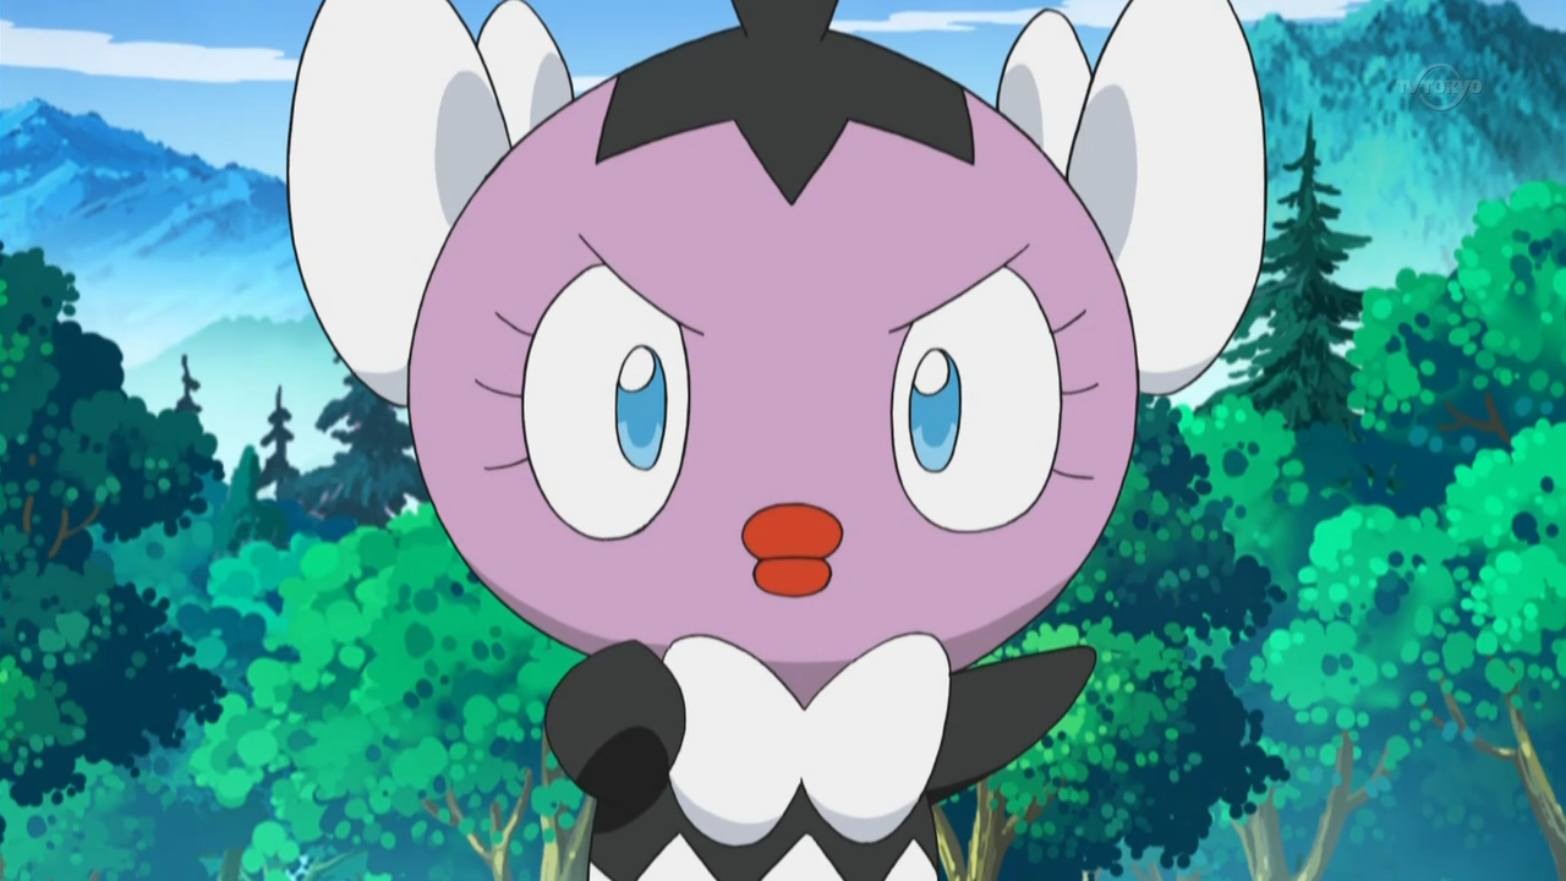 Katharine's Gothita is very bossy which really liked Scraggy. Due to that crush, her trainer challenged Ash to battle.